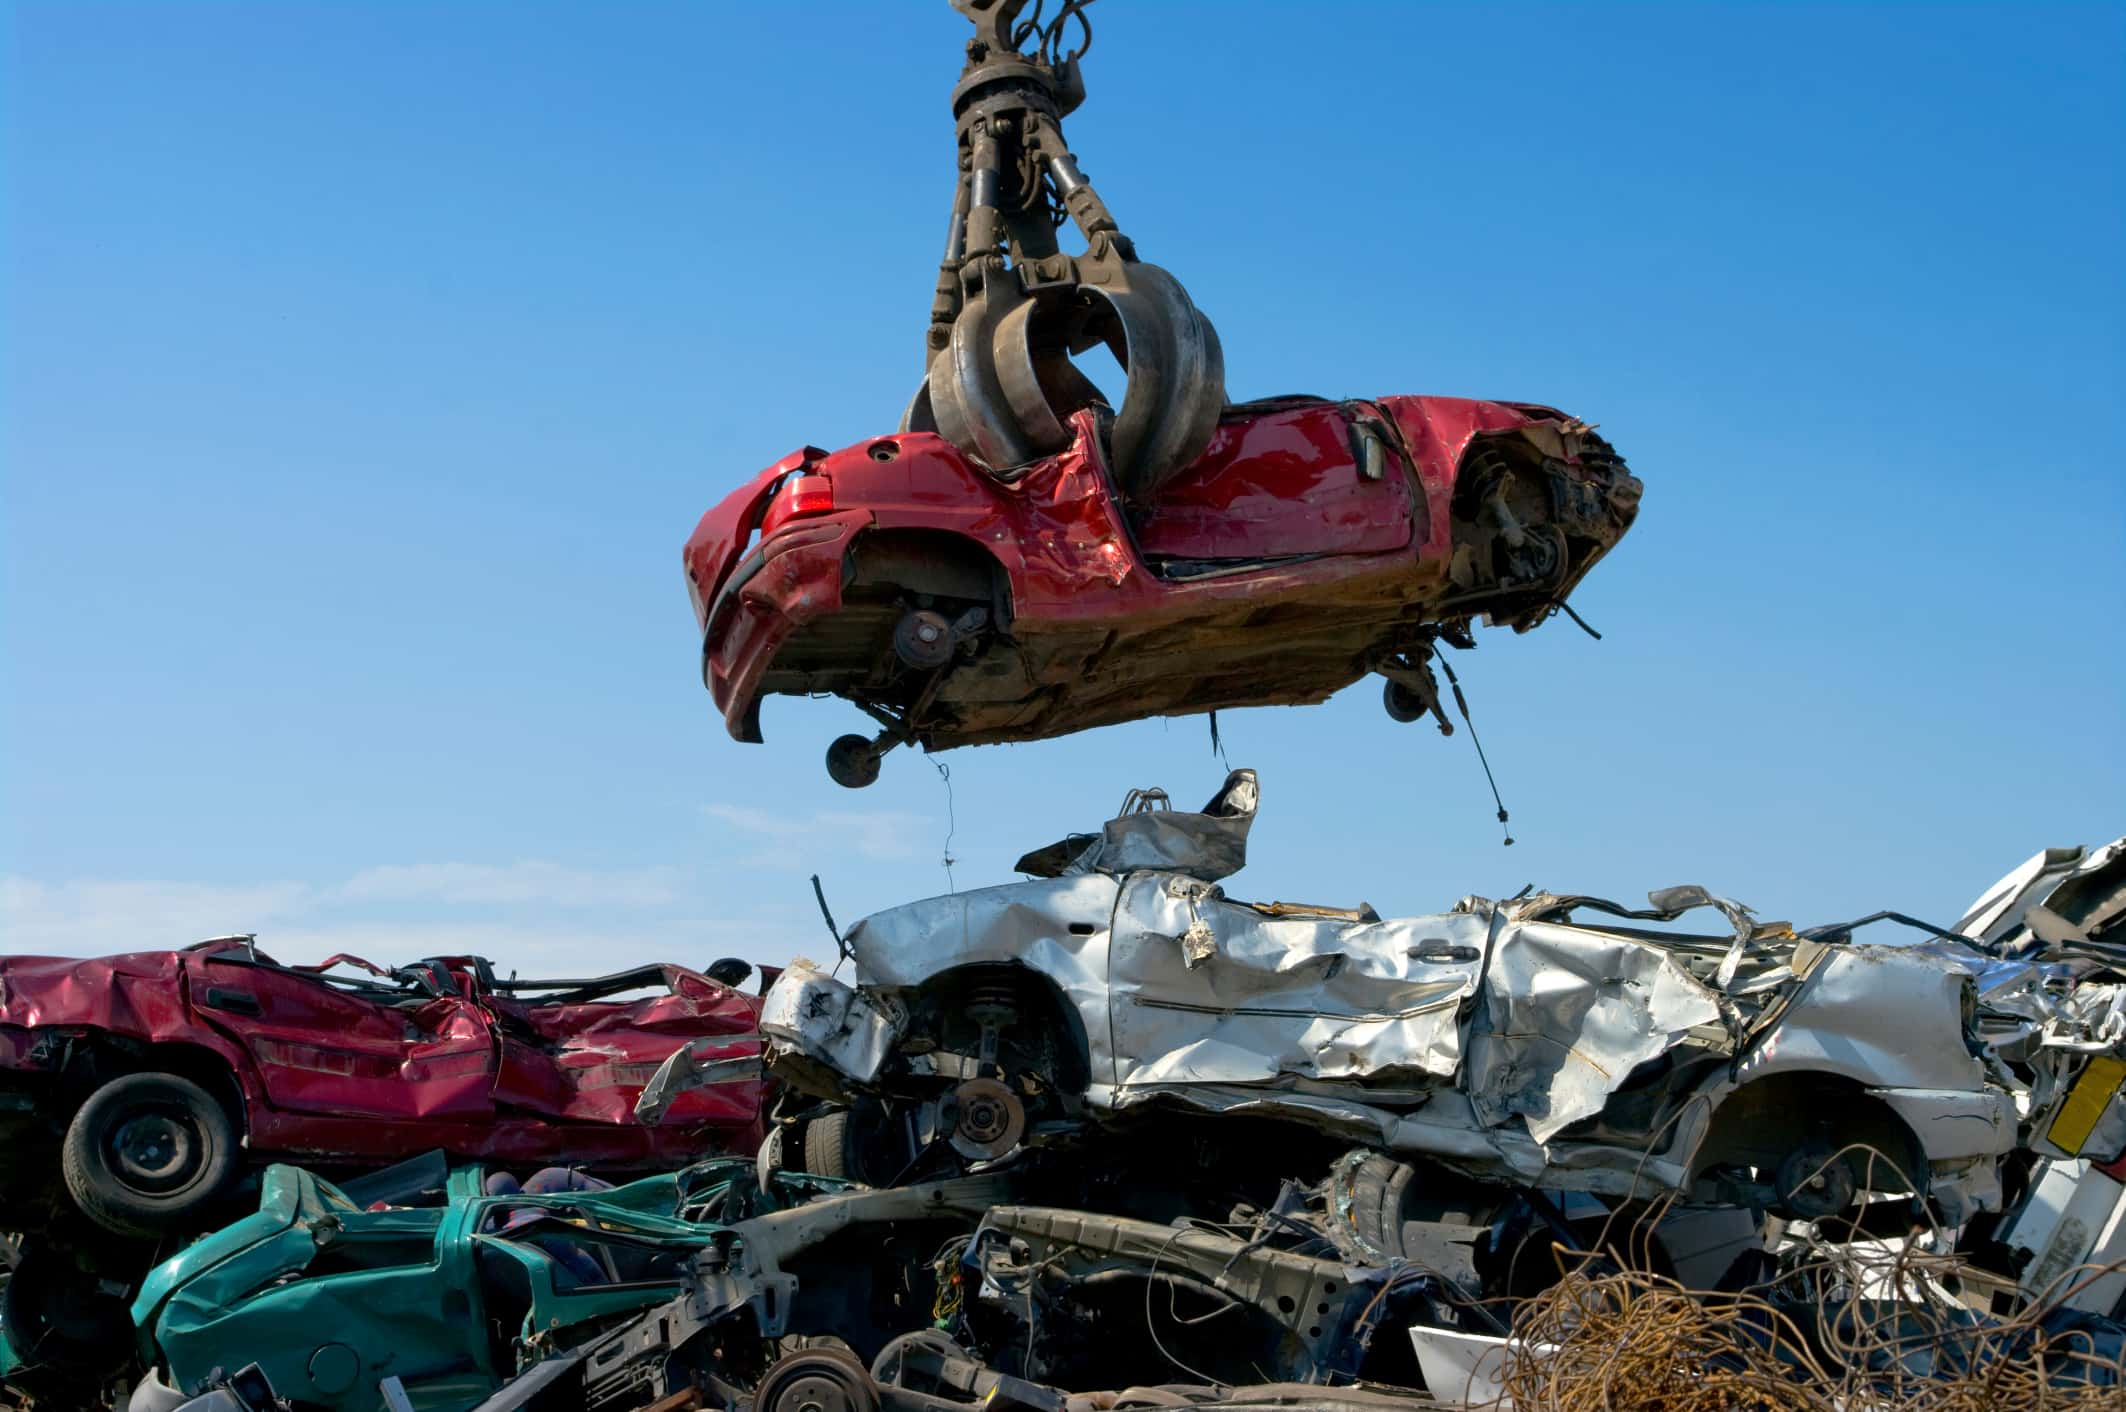 analyzing the scrap metal recycling industry Reportsnreportscom adds global aluminum scrap recycling market 2017-2021 latest research report the analysts forecast global aluminum scrap recycling market to grow.